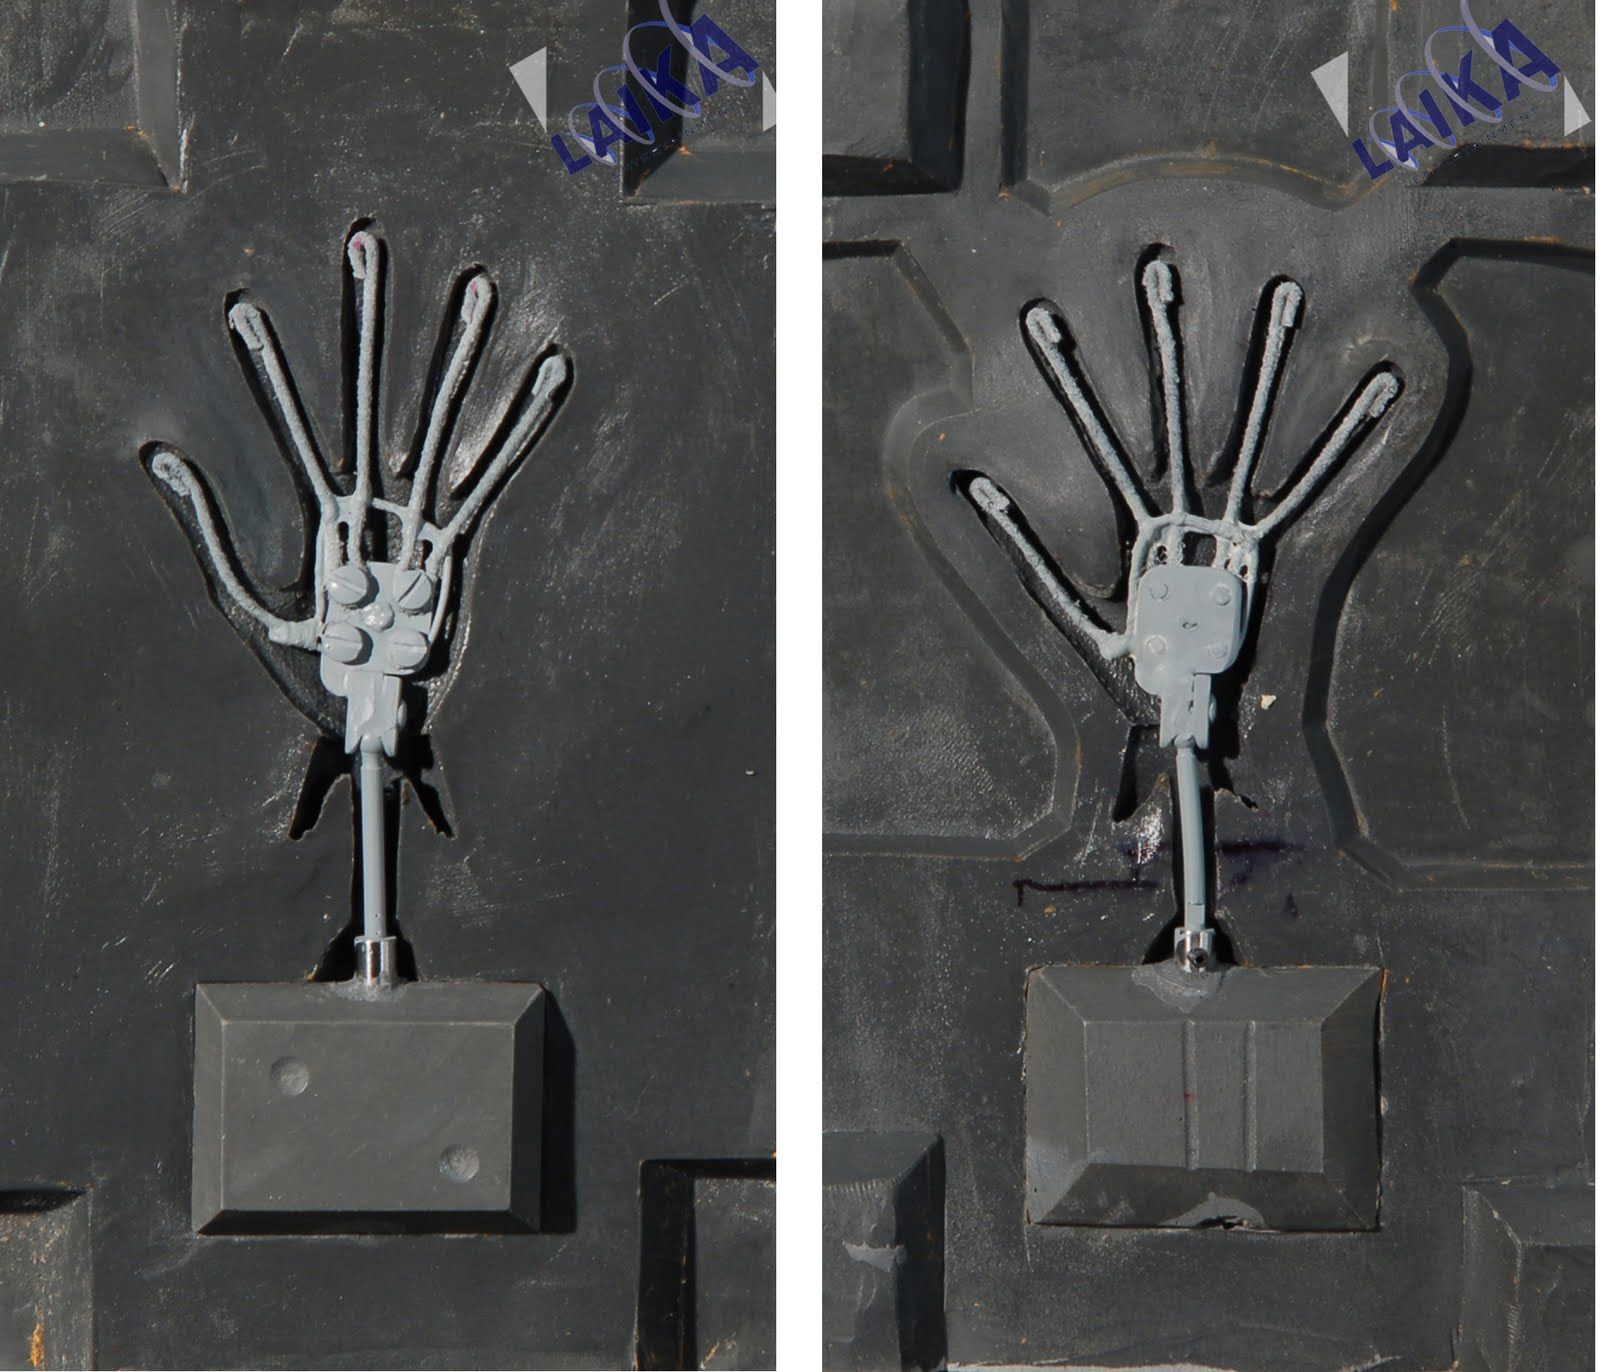 Smart Hand Armature For Silicone Casting Stopmotionanimation